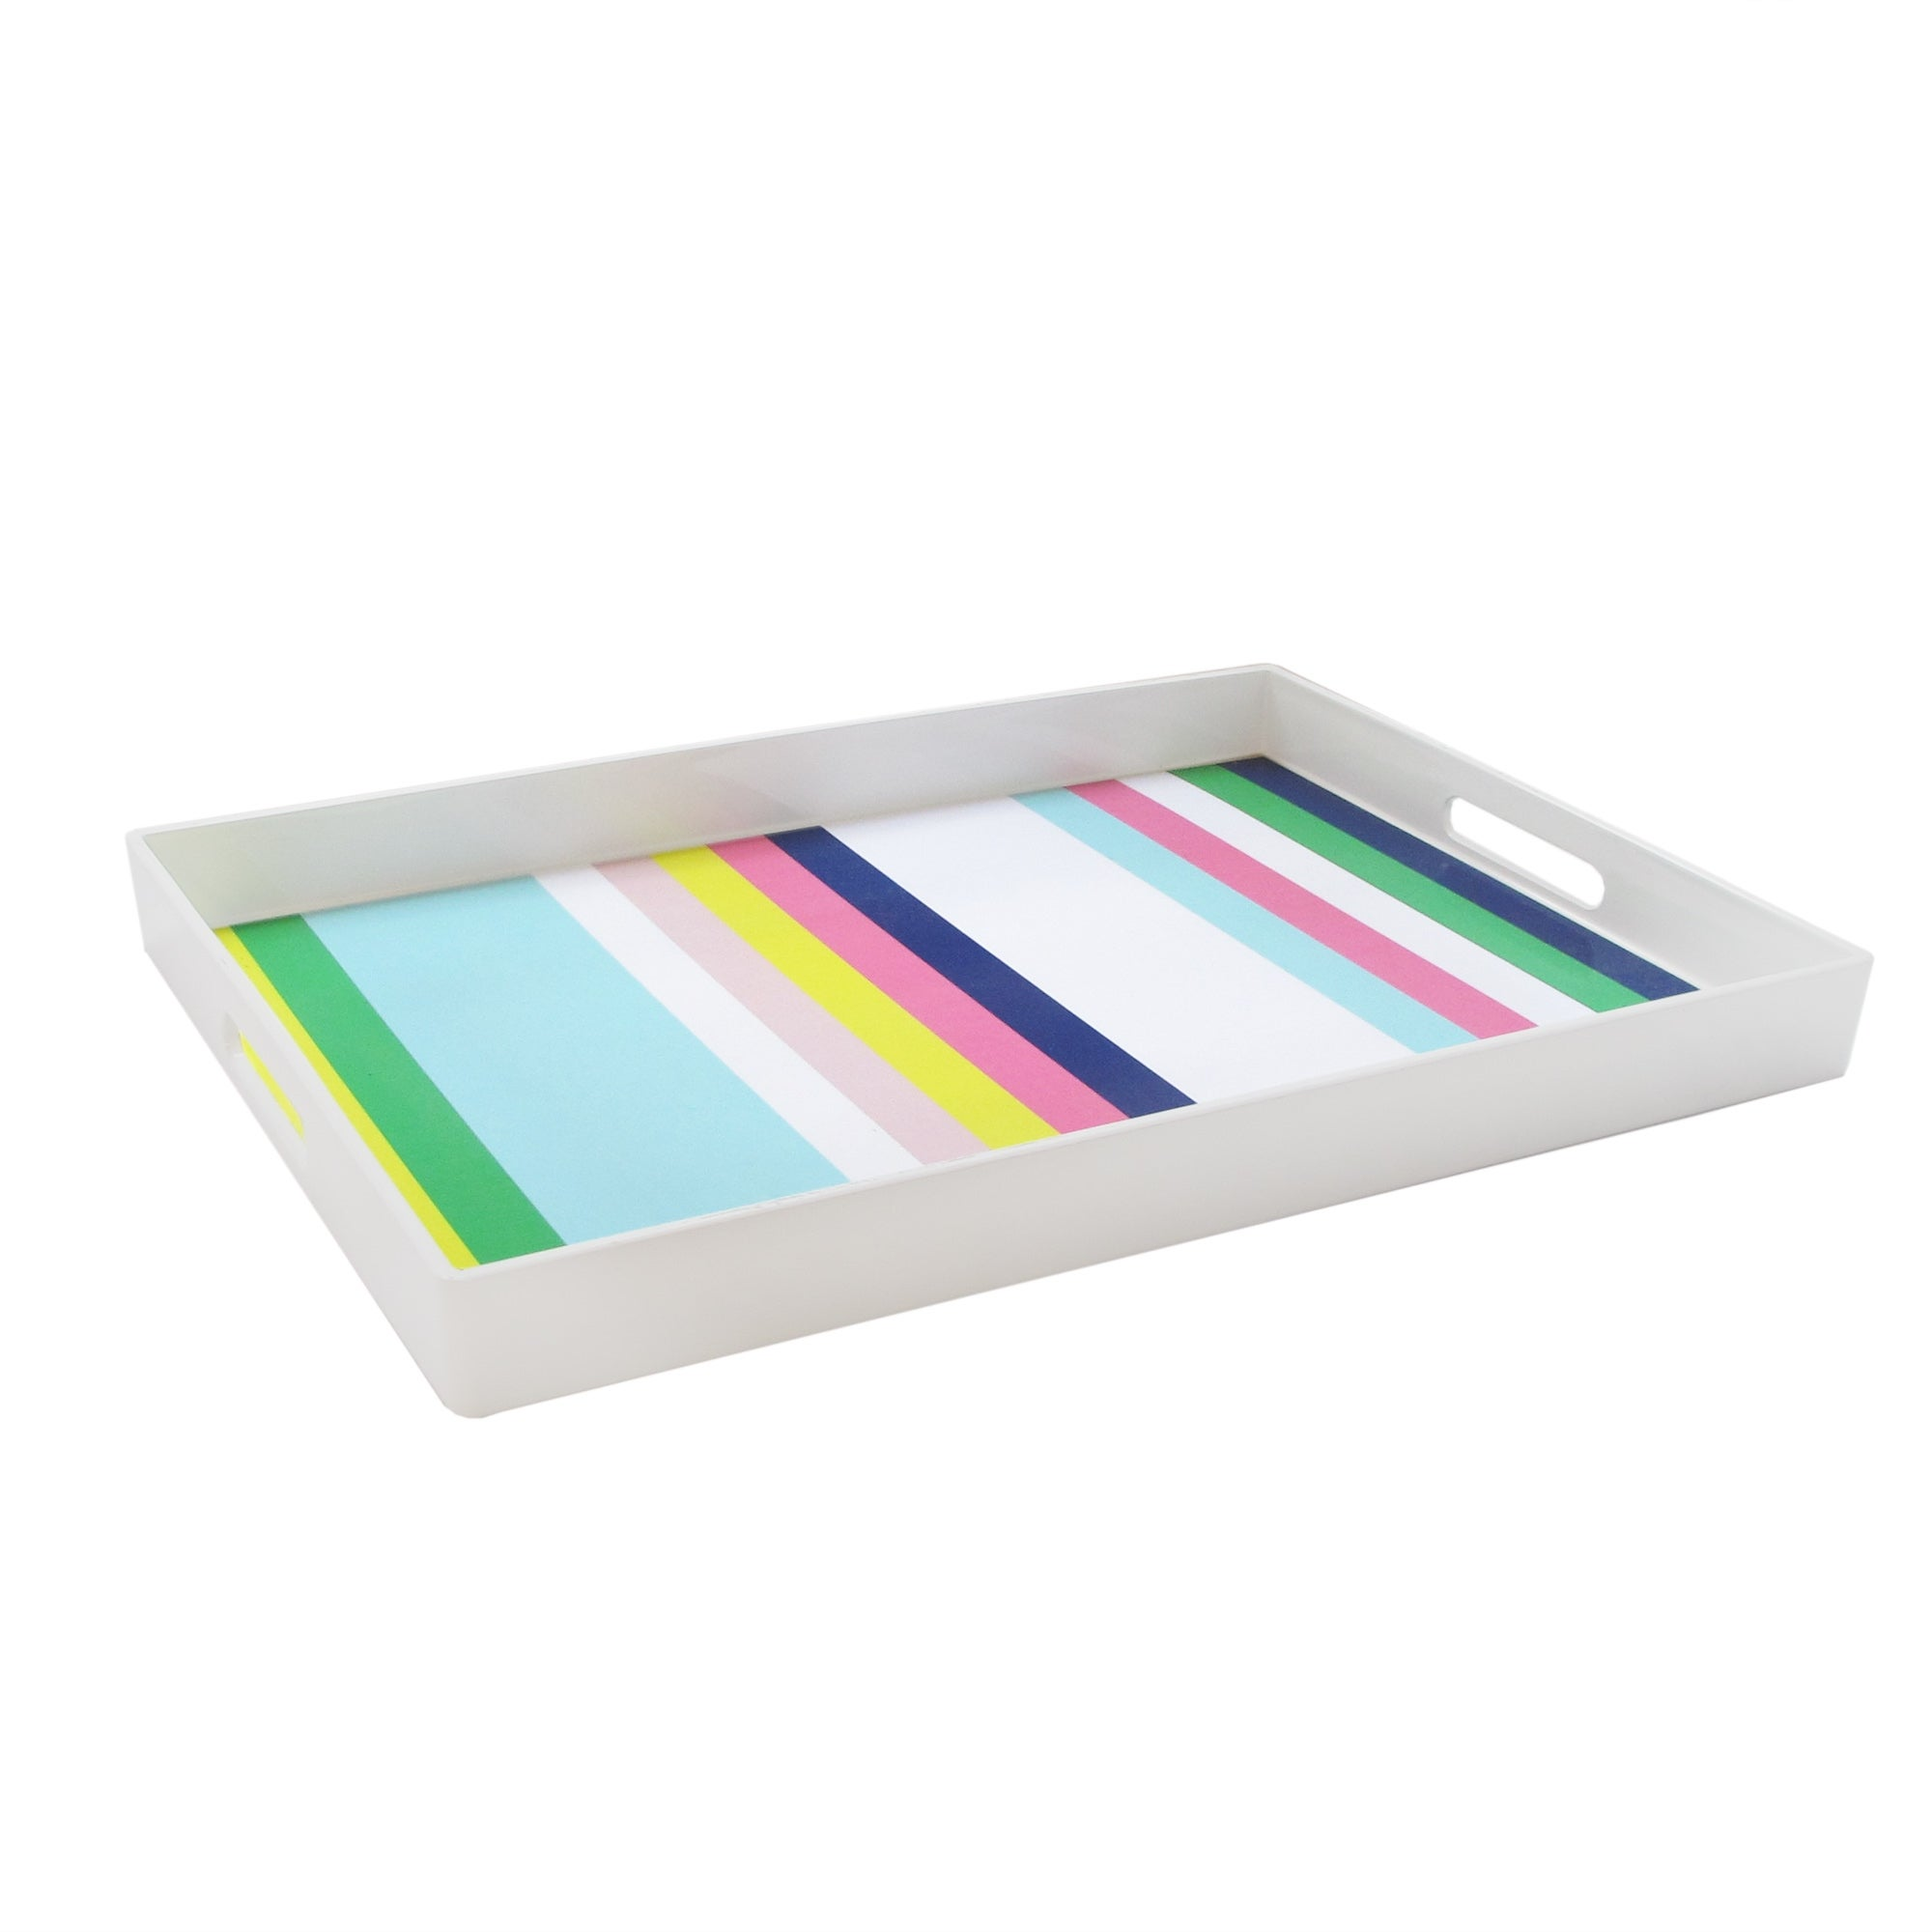 Trina Turk Stripes Rect Tray Overstock 30900531